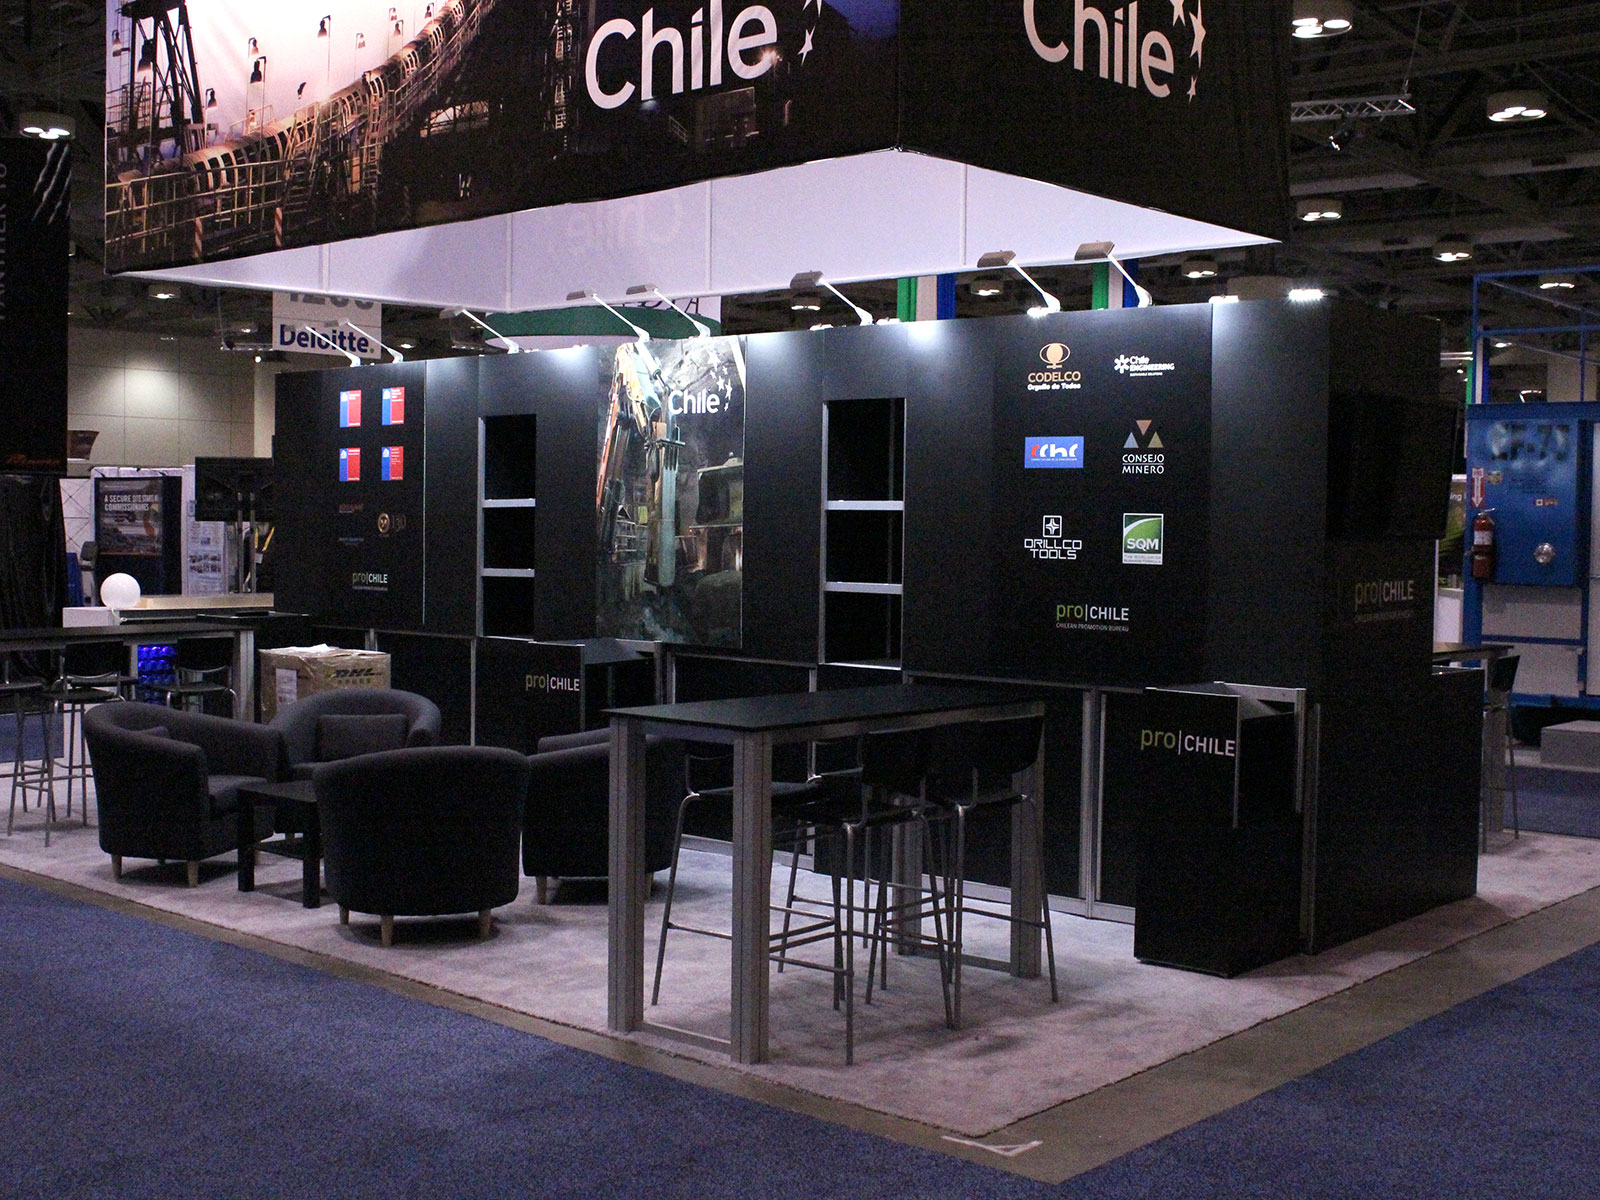 Chile Photograph